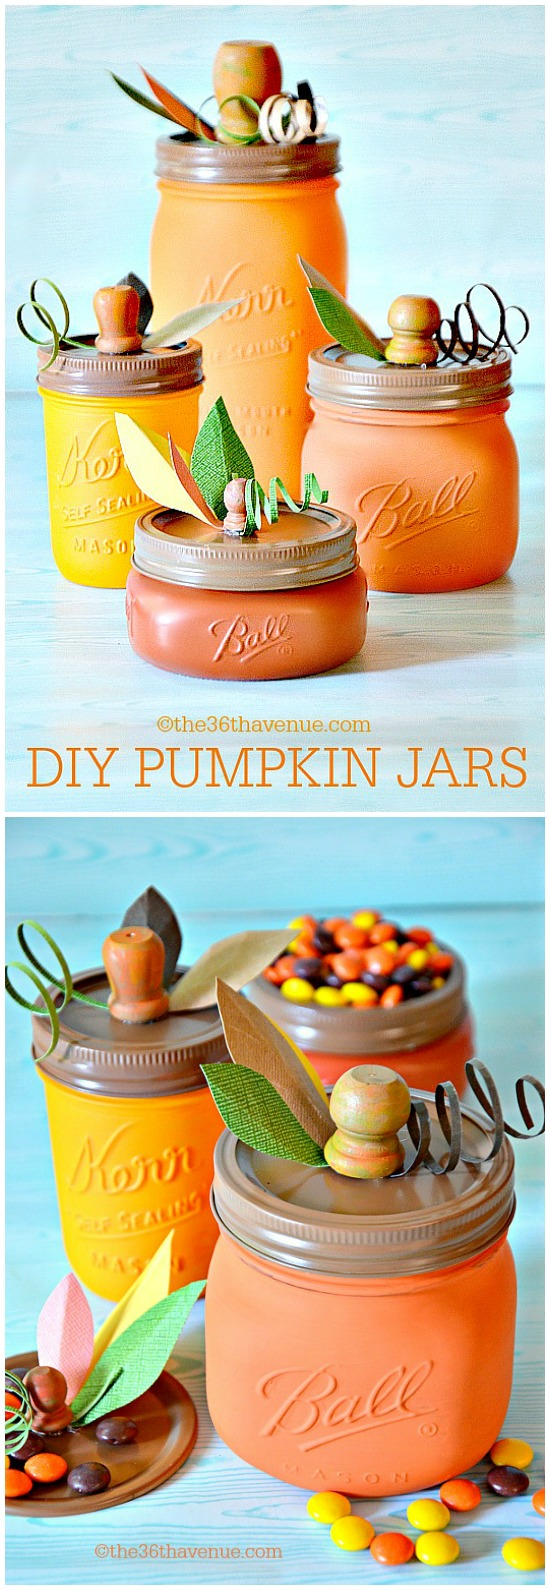 25 Easy Fall DIY Projects: DIY Pumpkin Mason Jars by The 36th Avenue